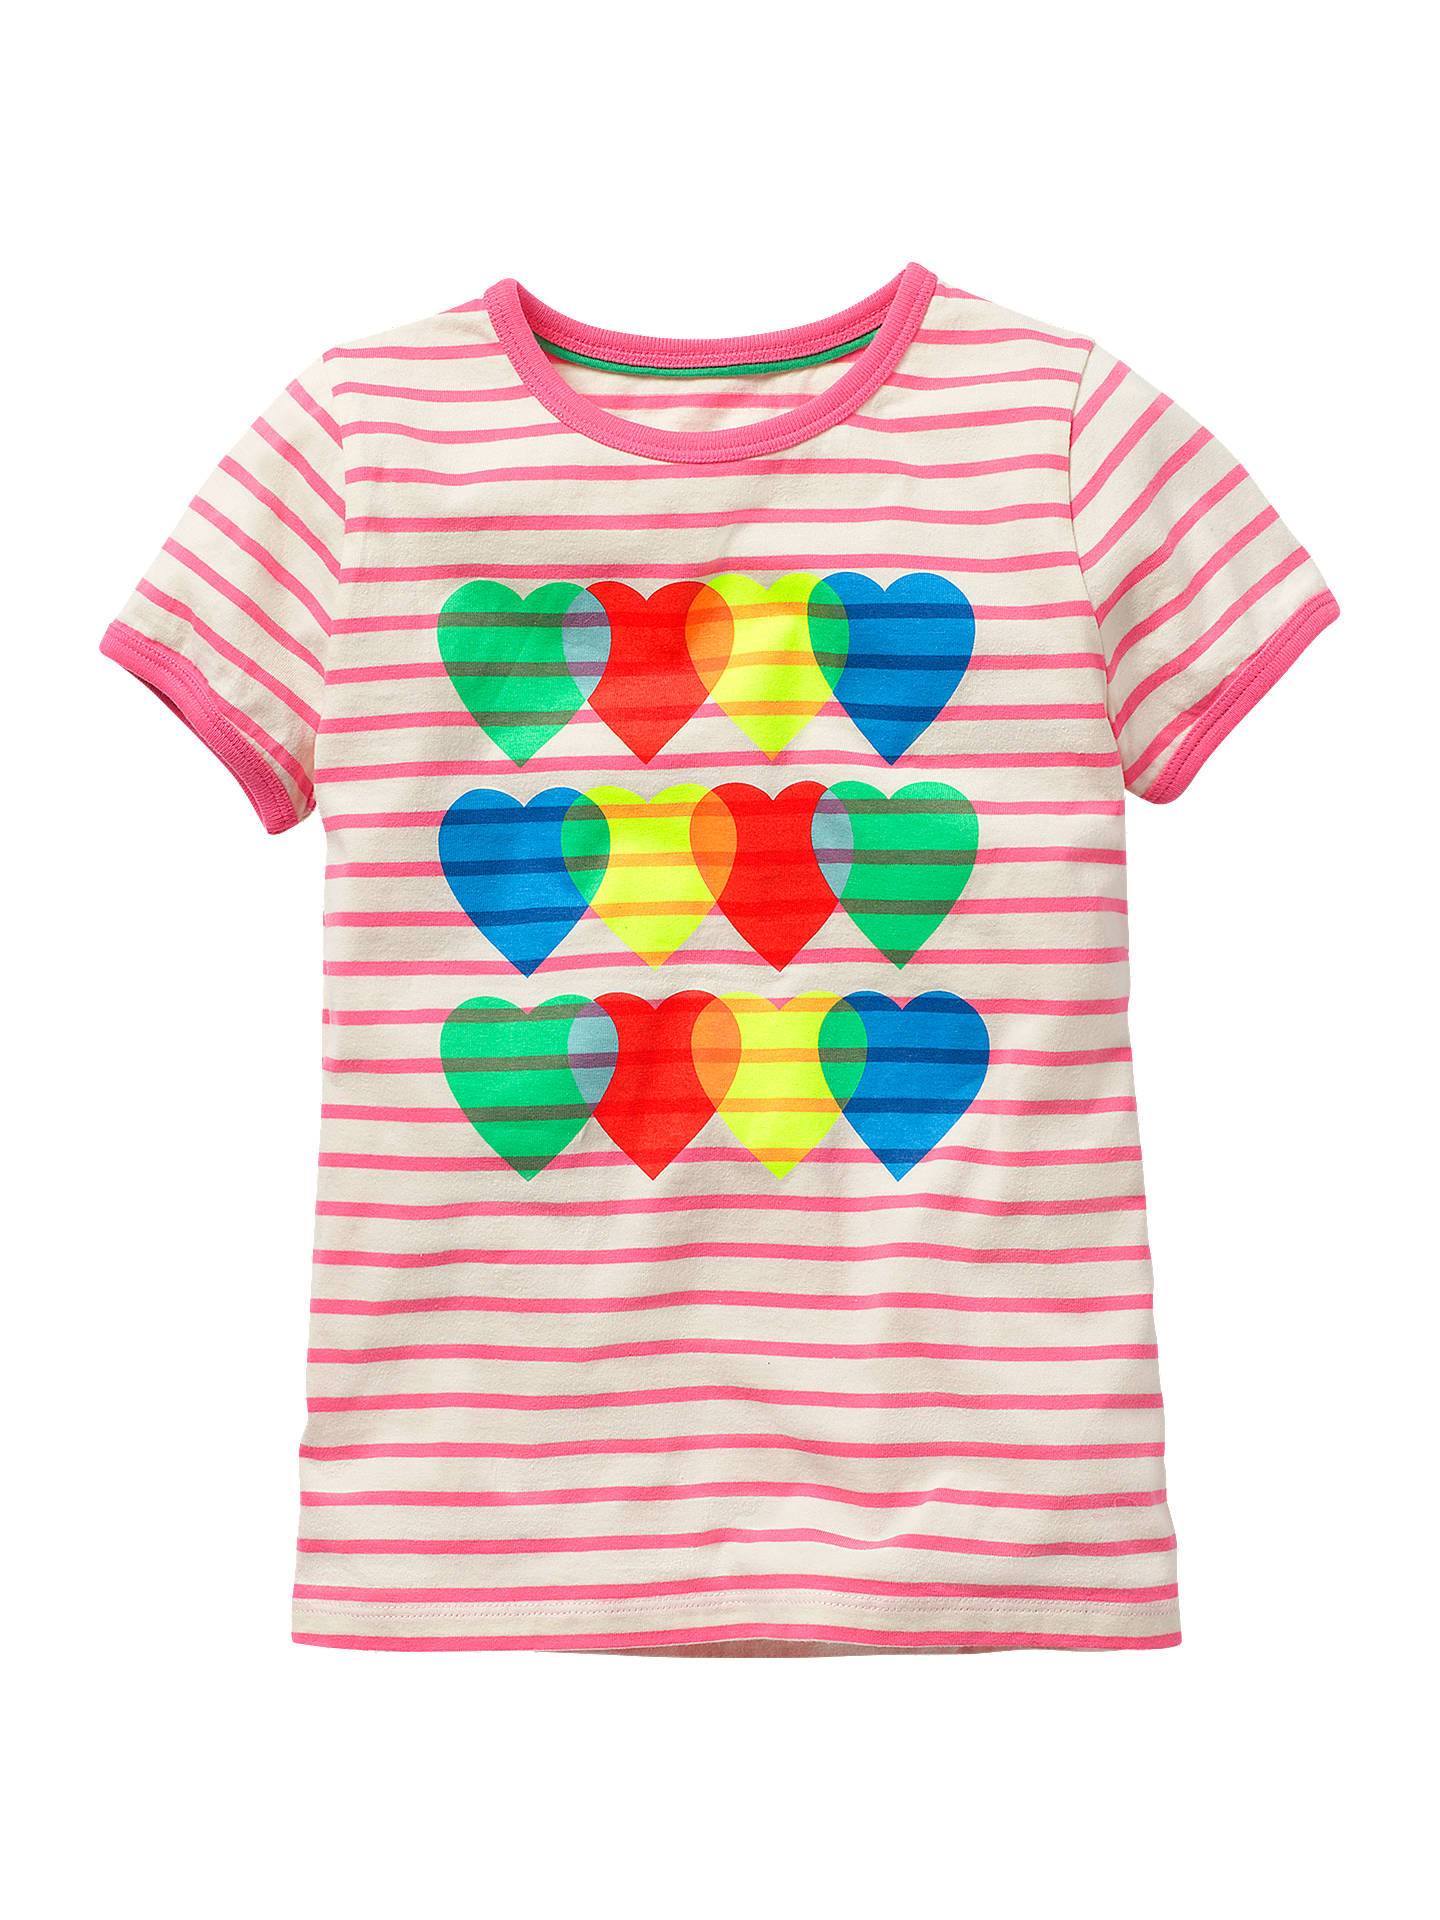 23b06c4a2 Mini Boden Girls' Heart and Stripe T-Shirt, Pink at John Lewis ...